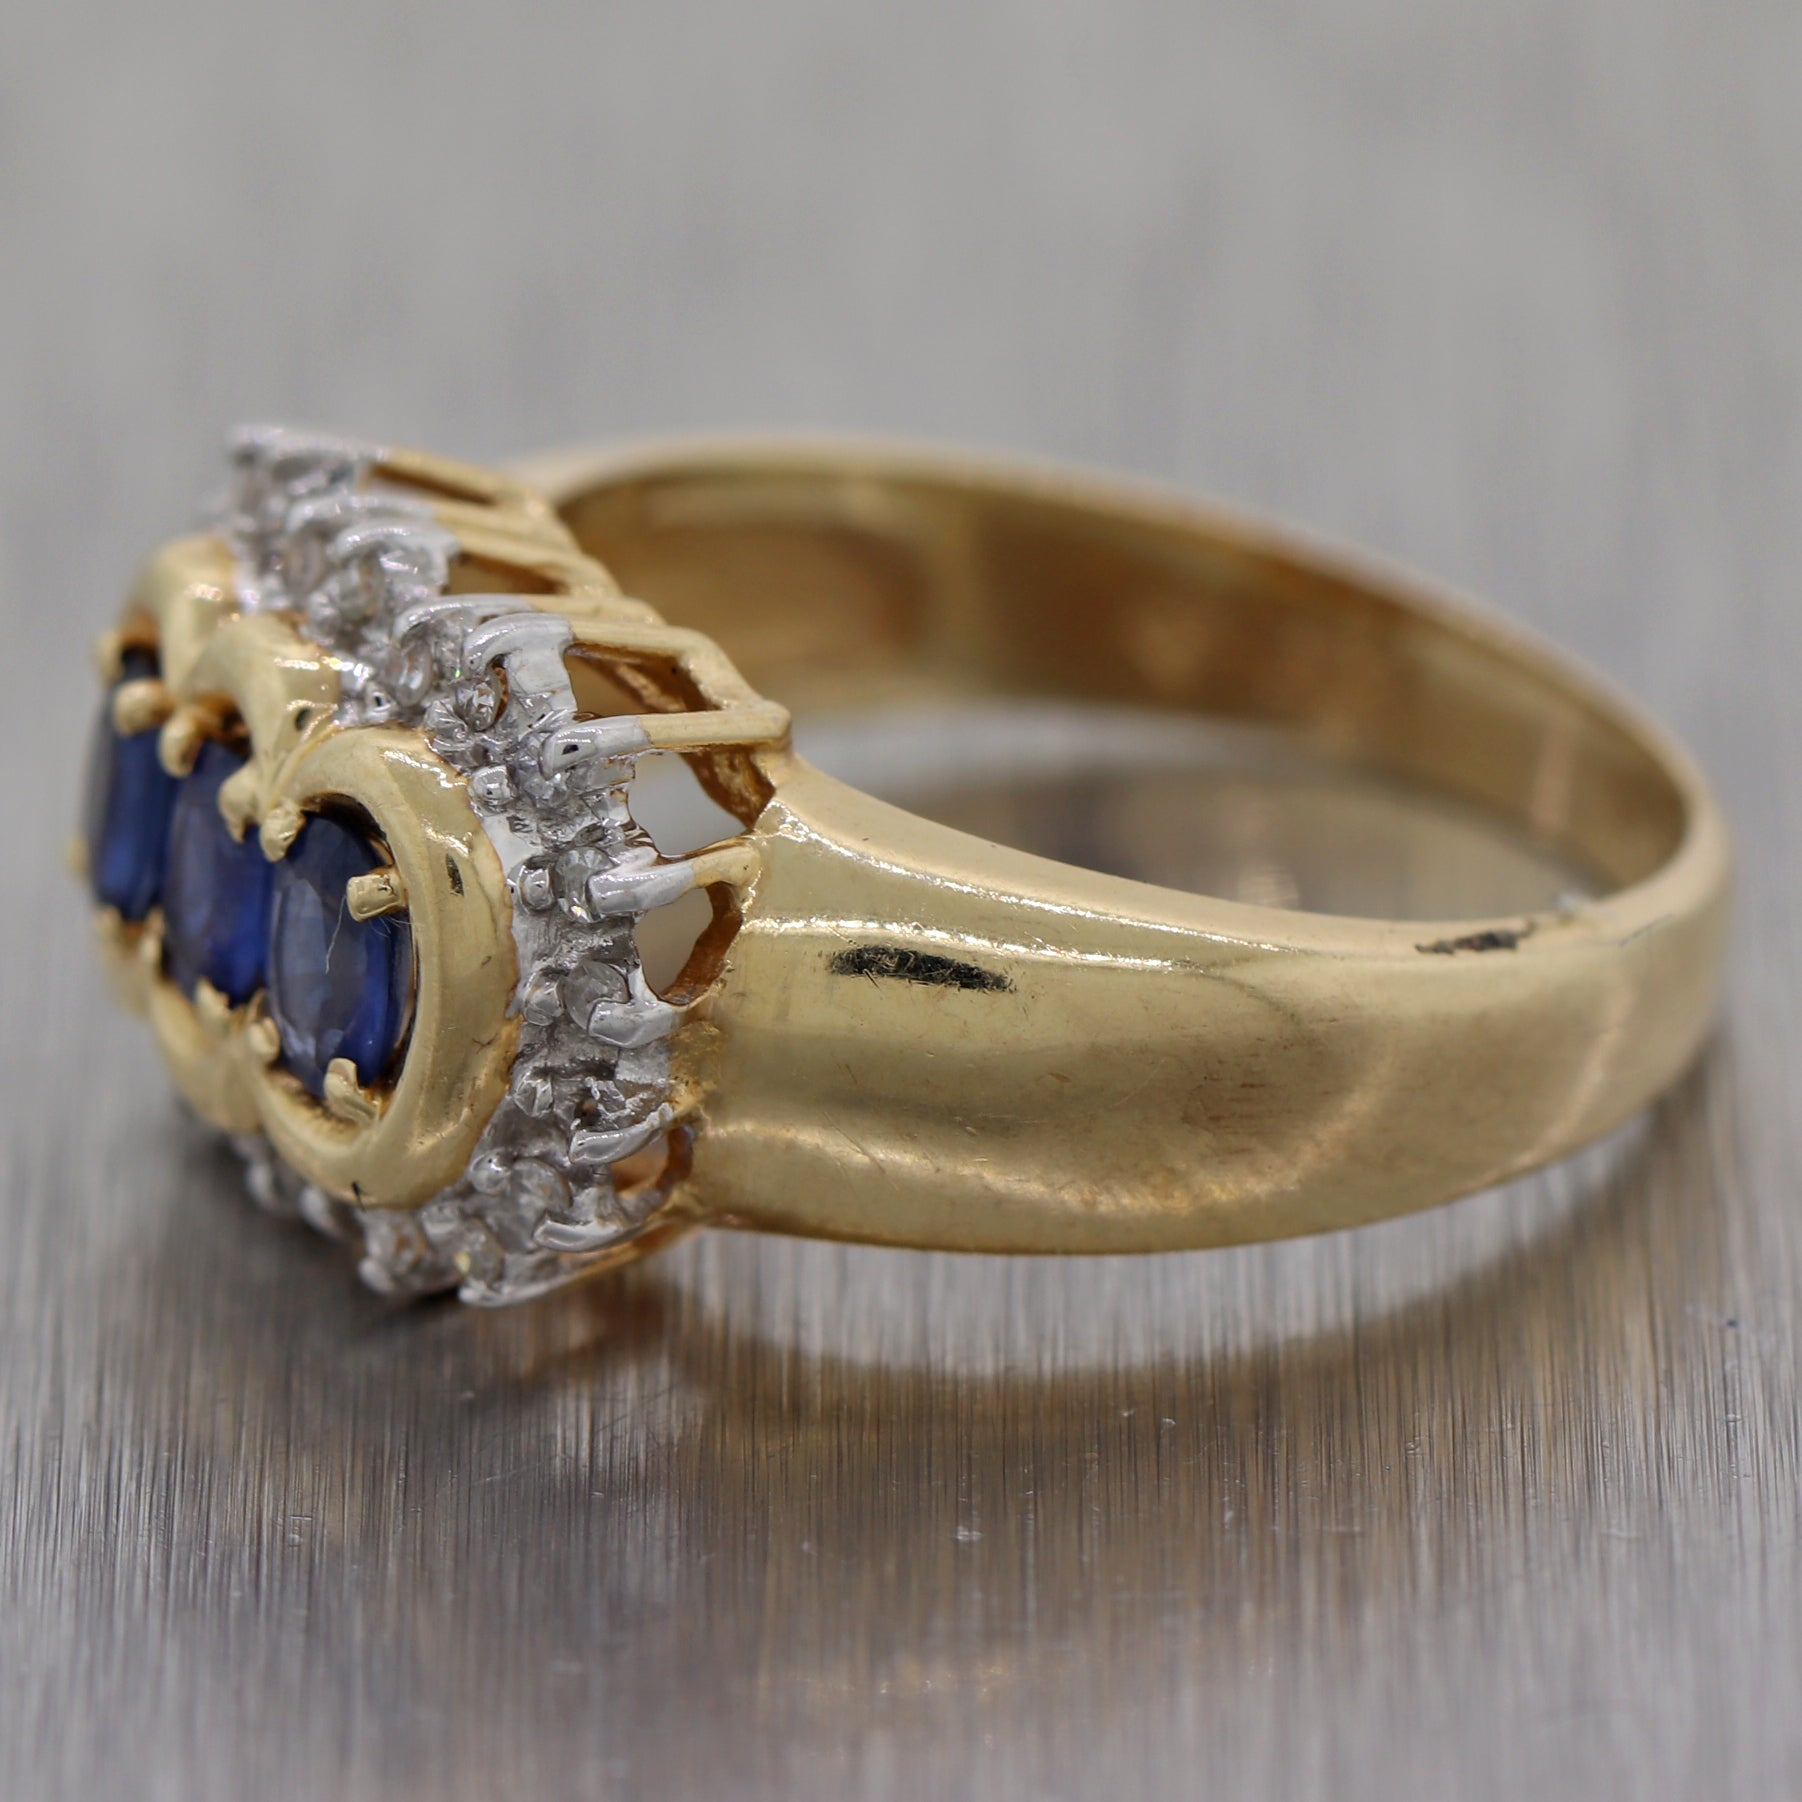 Vintage Estate 14k Yellow Gold 0.85ctw Sapphire & Diamond Ring